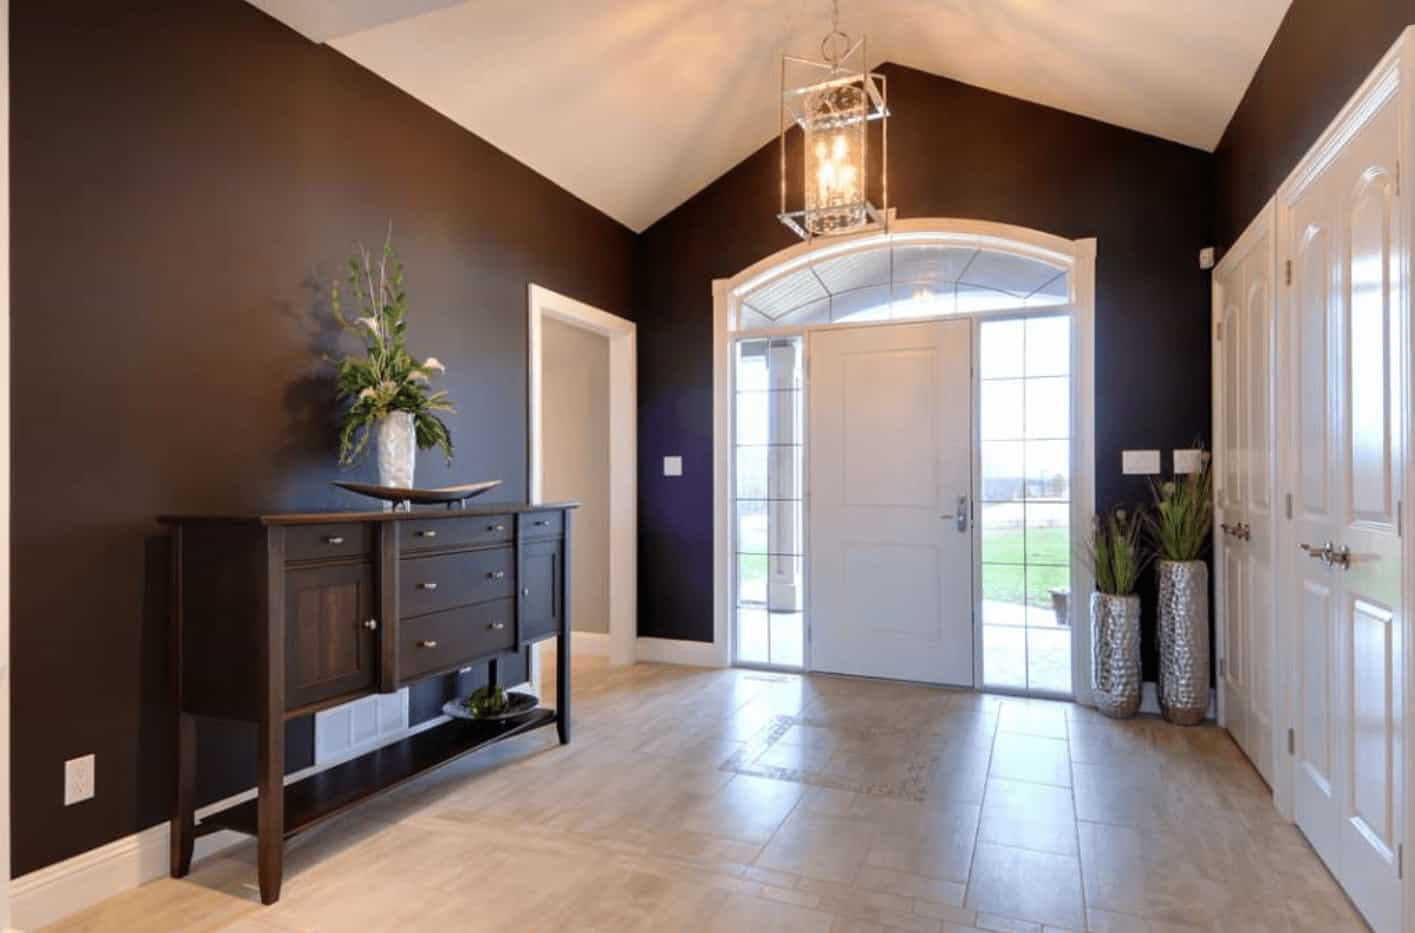 Brown foyer offers tiled flooring and cathedral ceiling with a hanging pendant light. It includes silver vases and a wooden console table and fitted with drawers.